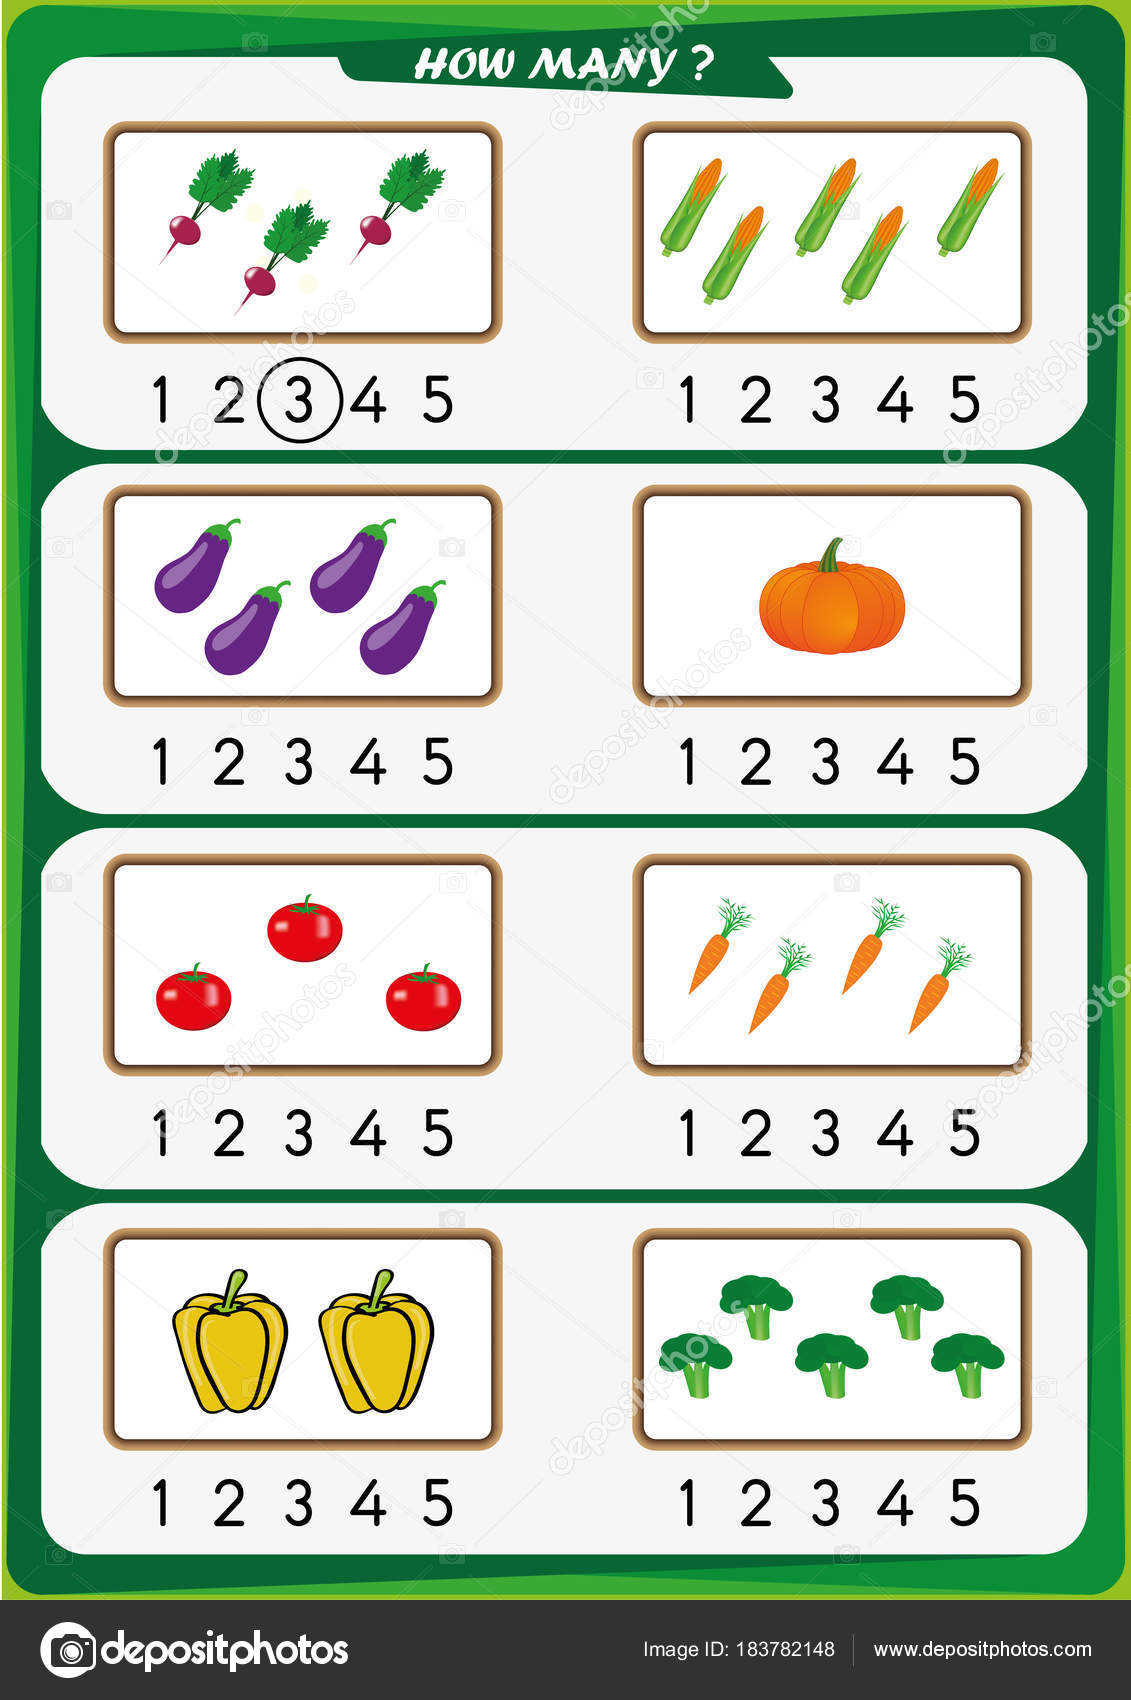 Worksheet For Kindergarten Kids Count The Number Of